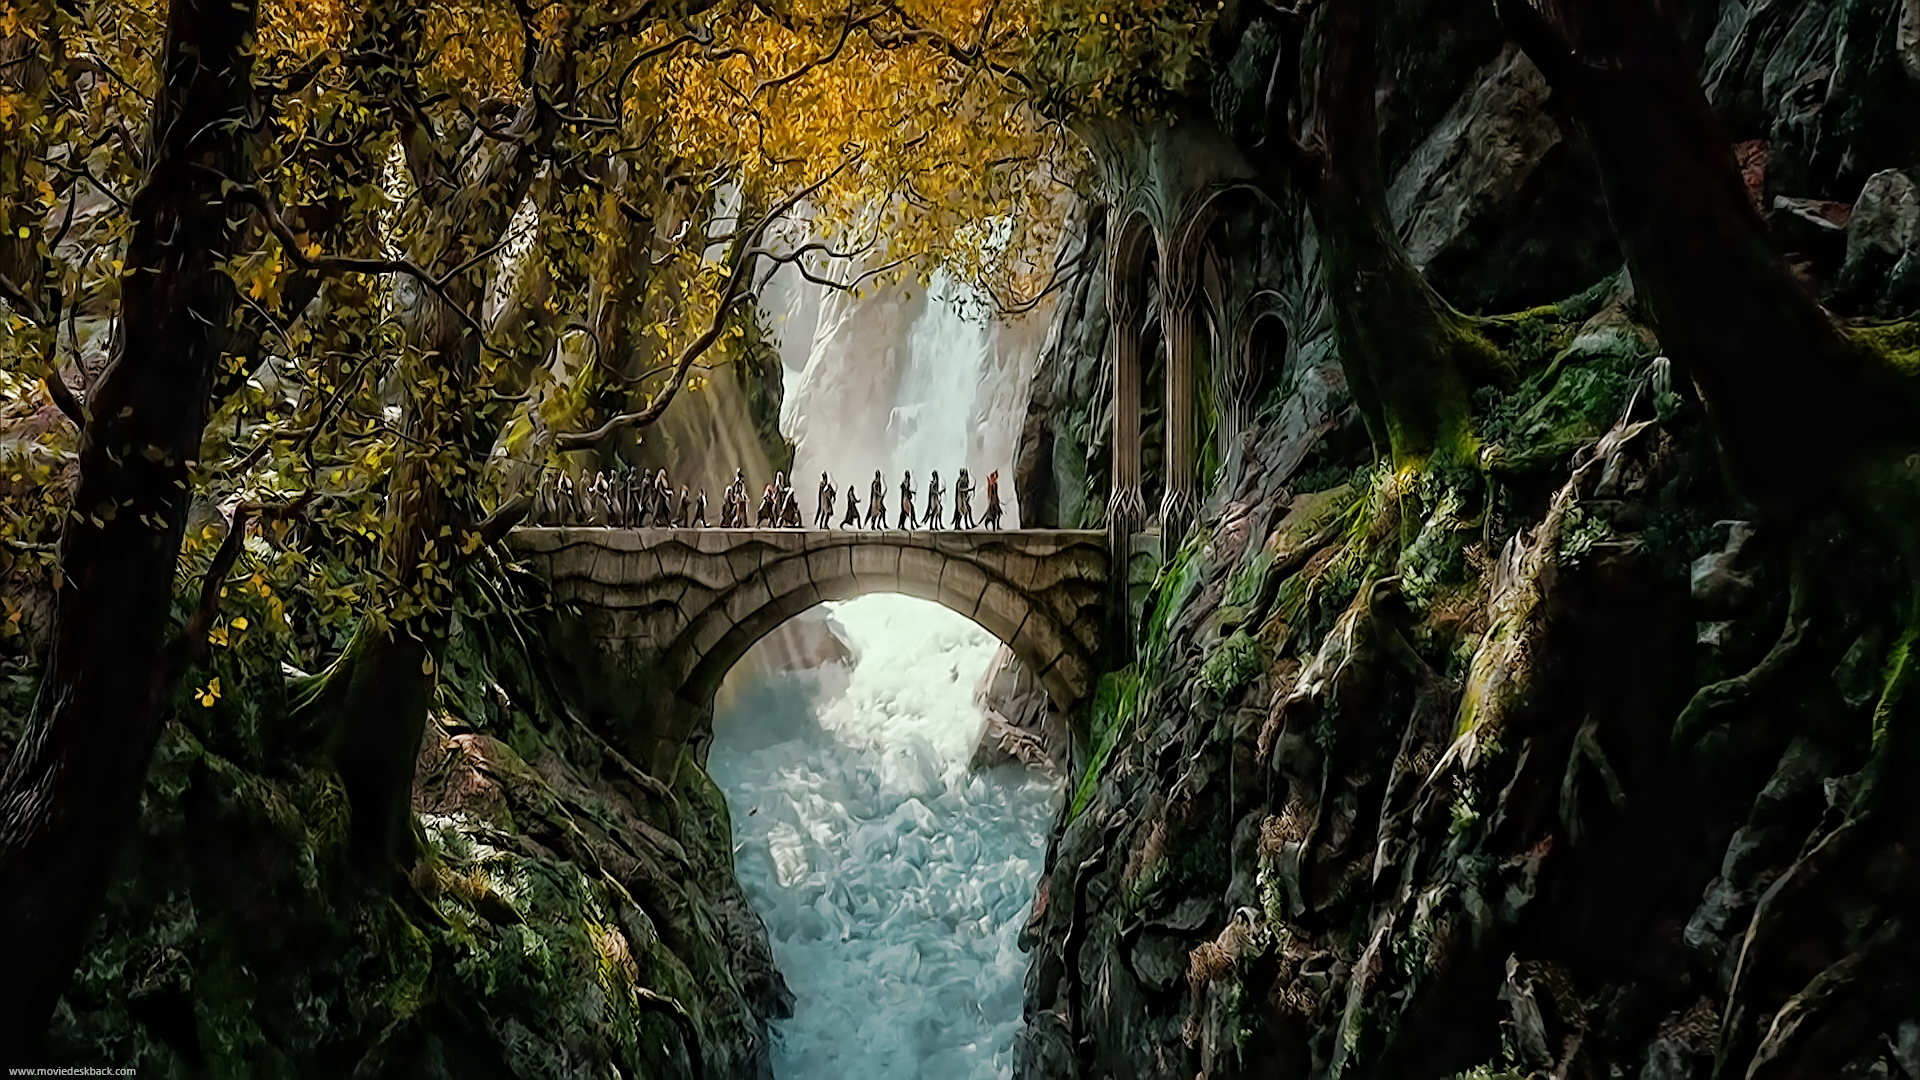 The Hobbit The Desolation Of Smaug Computer Wallpapers Desktop 1920x1080